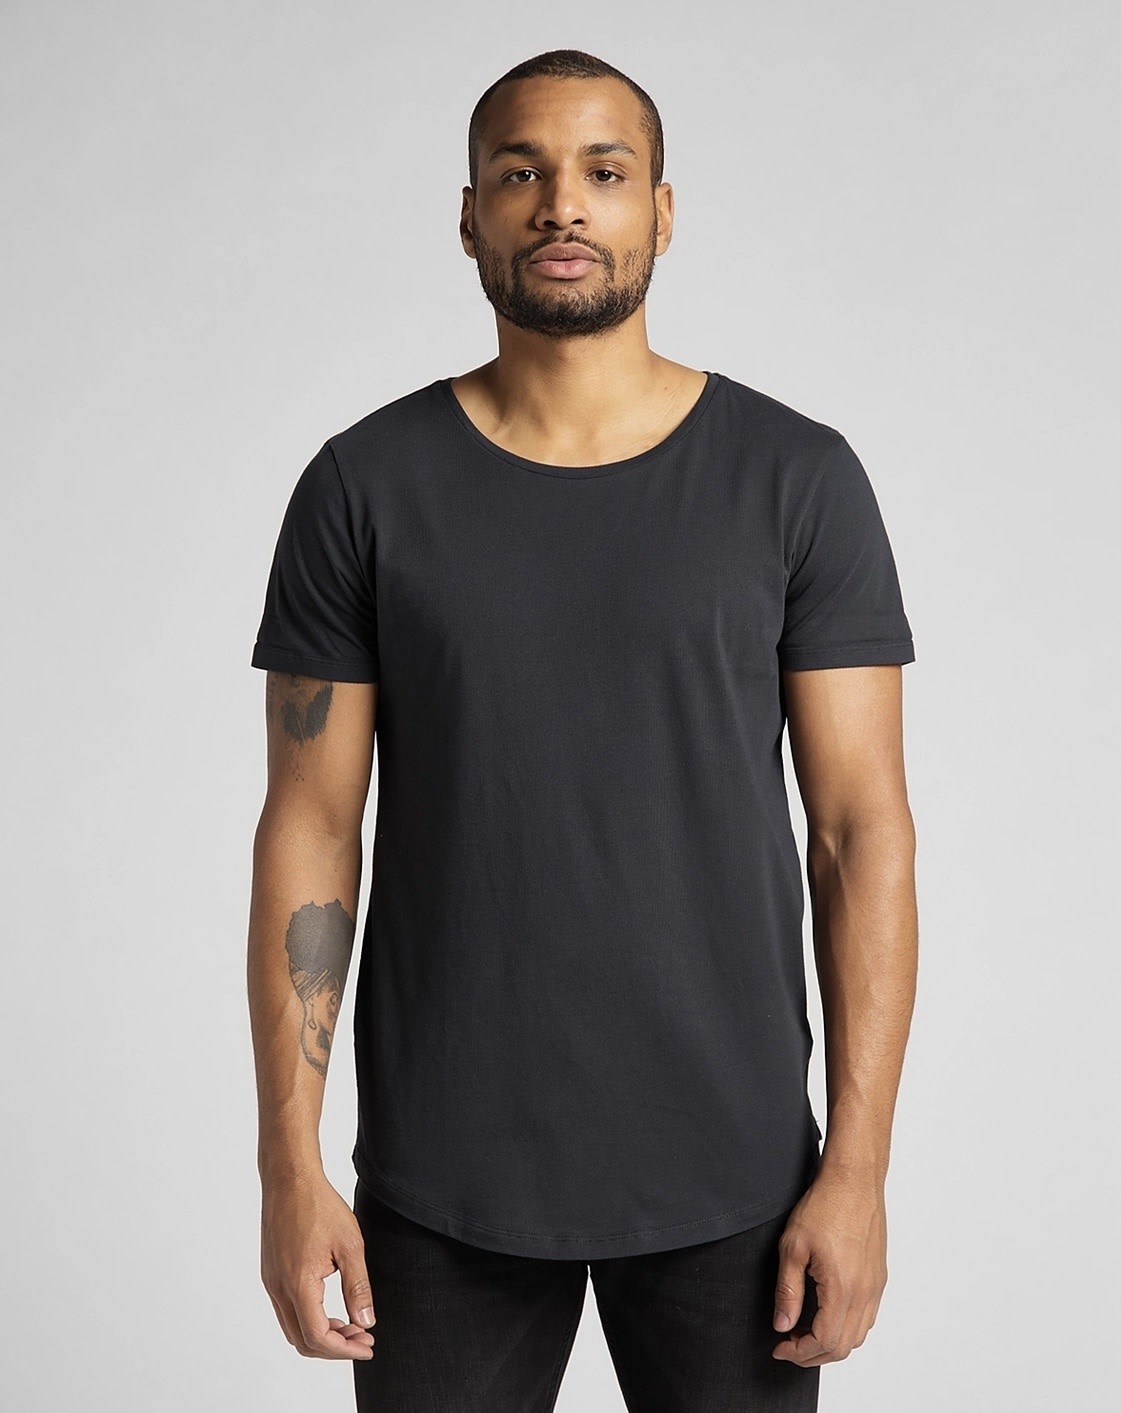 Lee Lee shaped Tee Long fit Washed Black